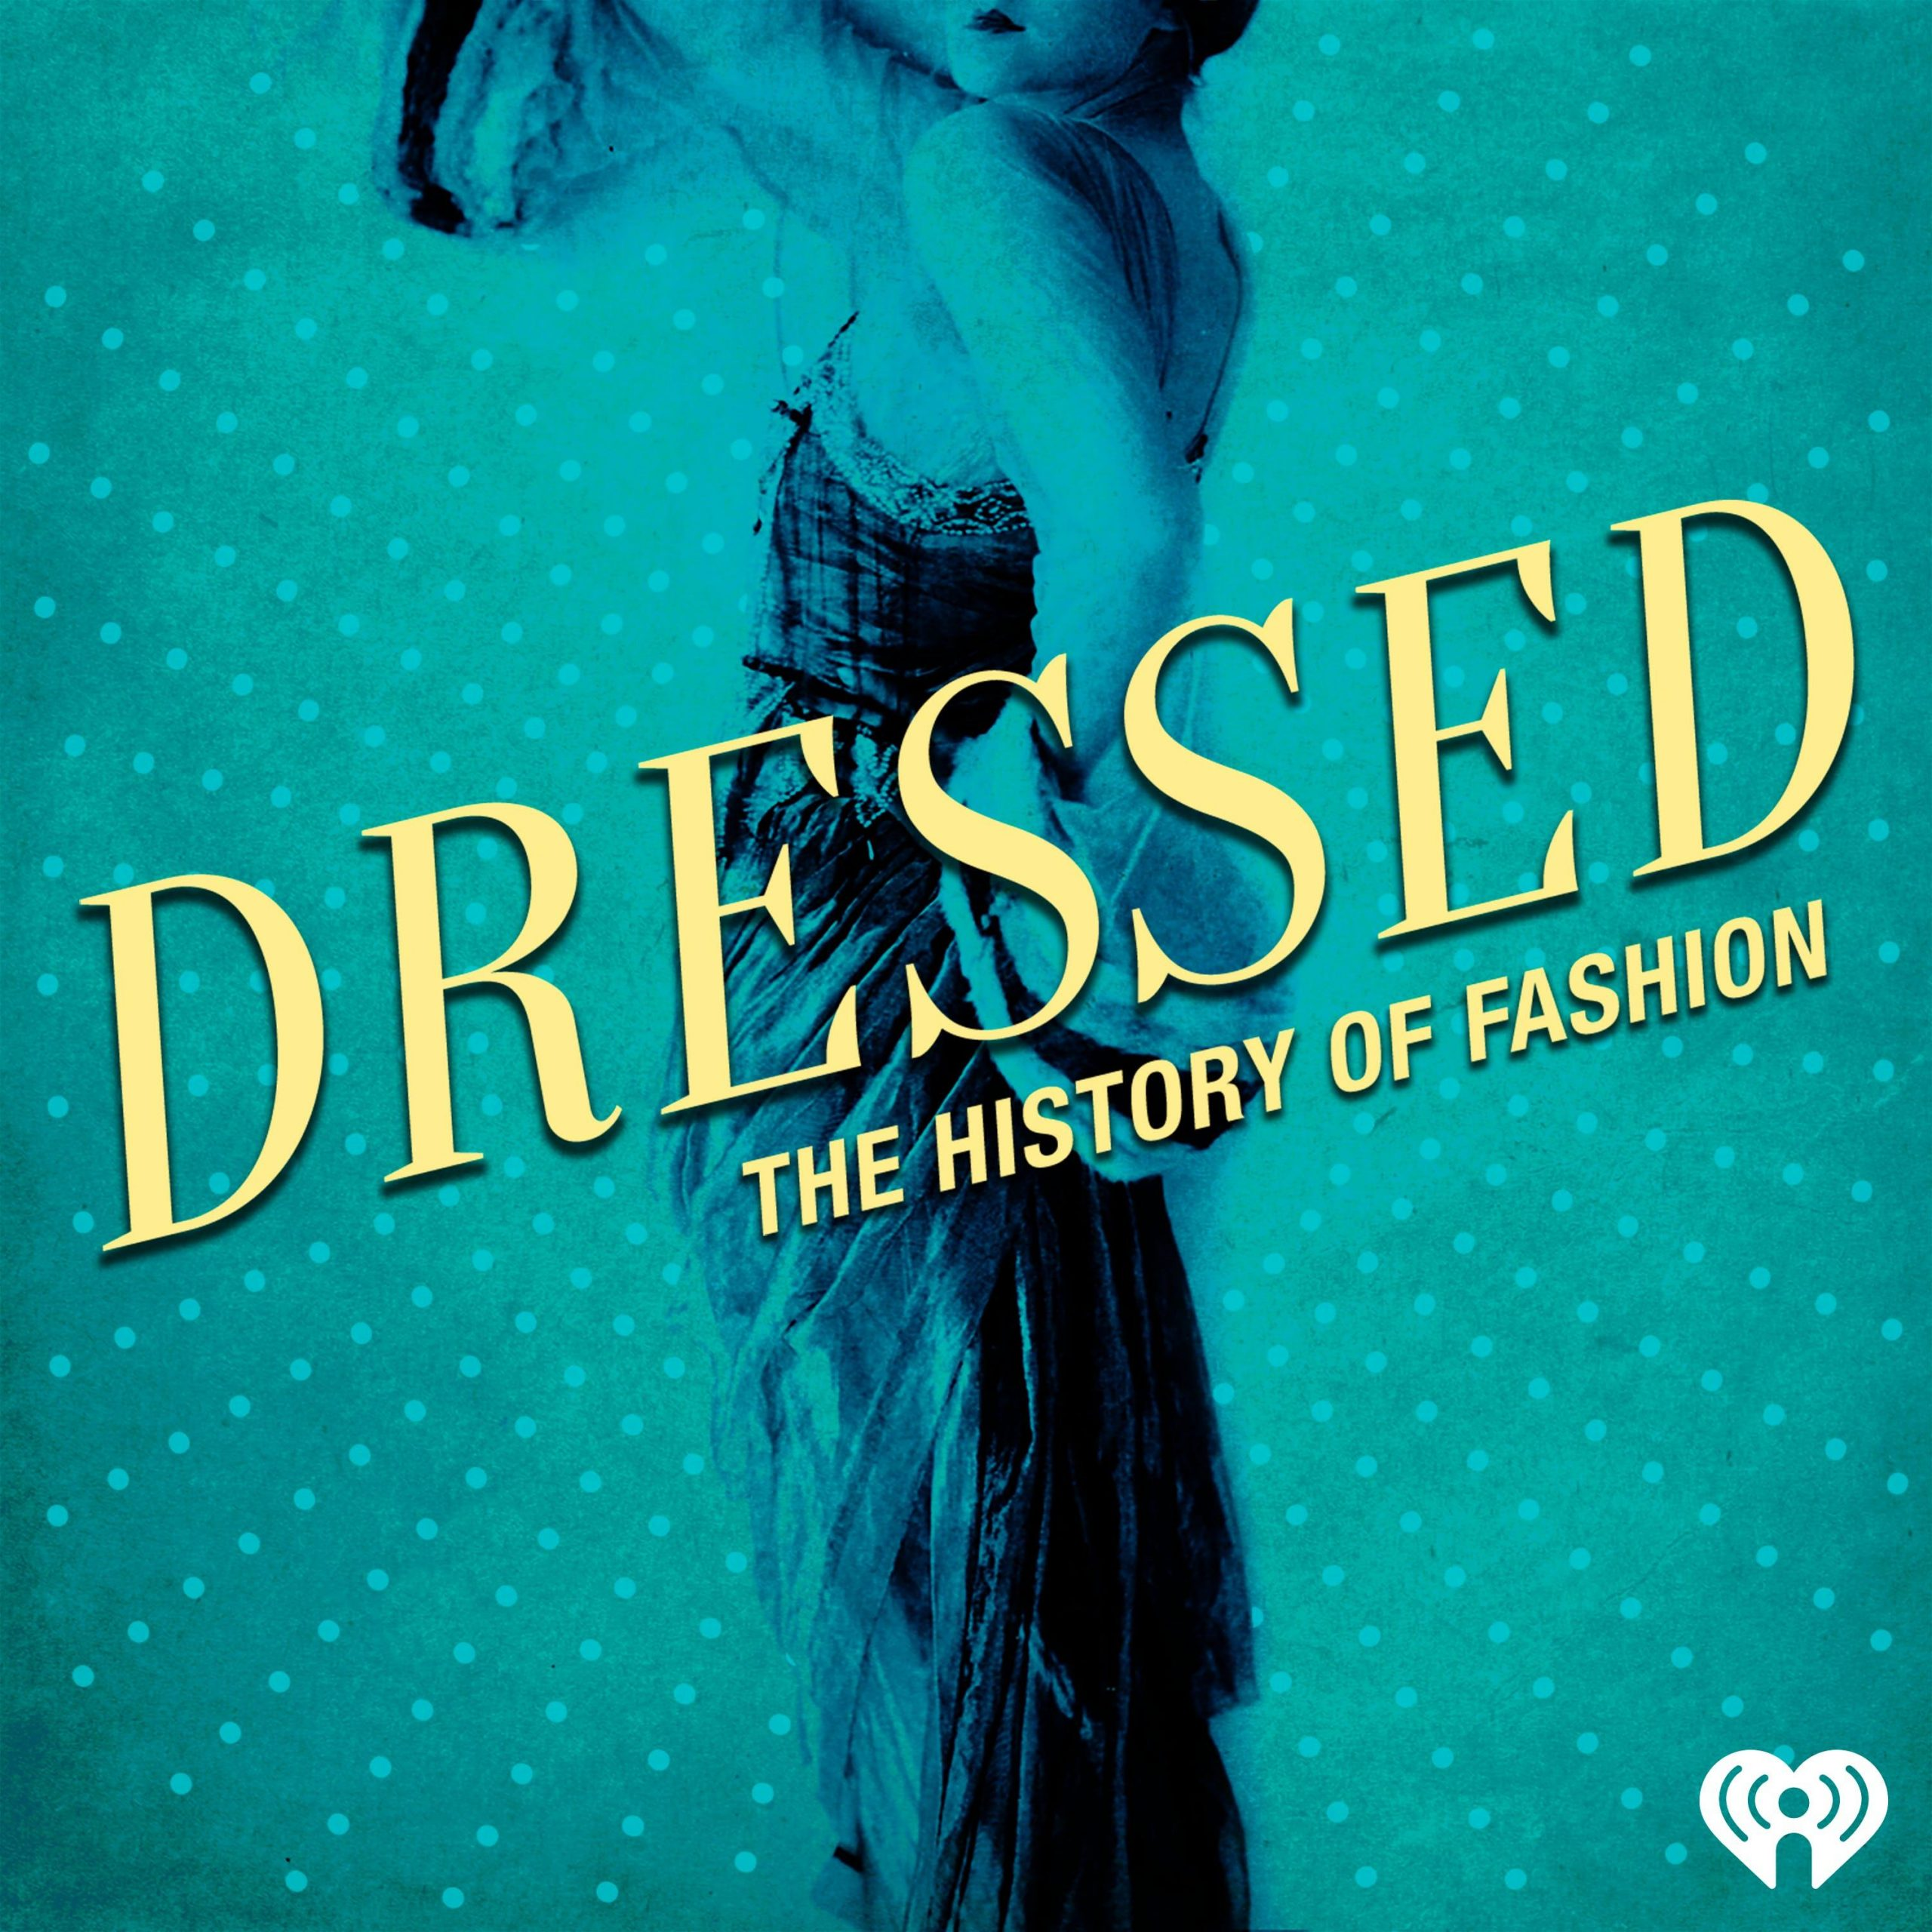 Dressed - The History of Fashion podcast